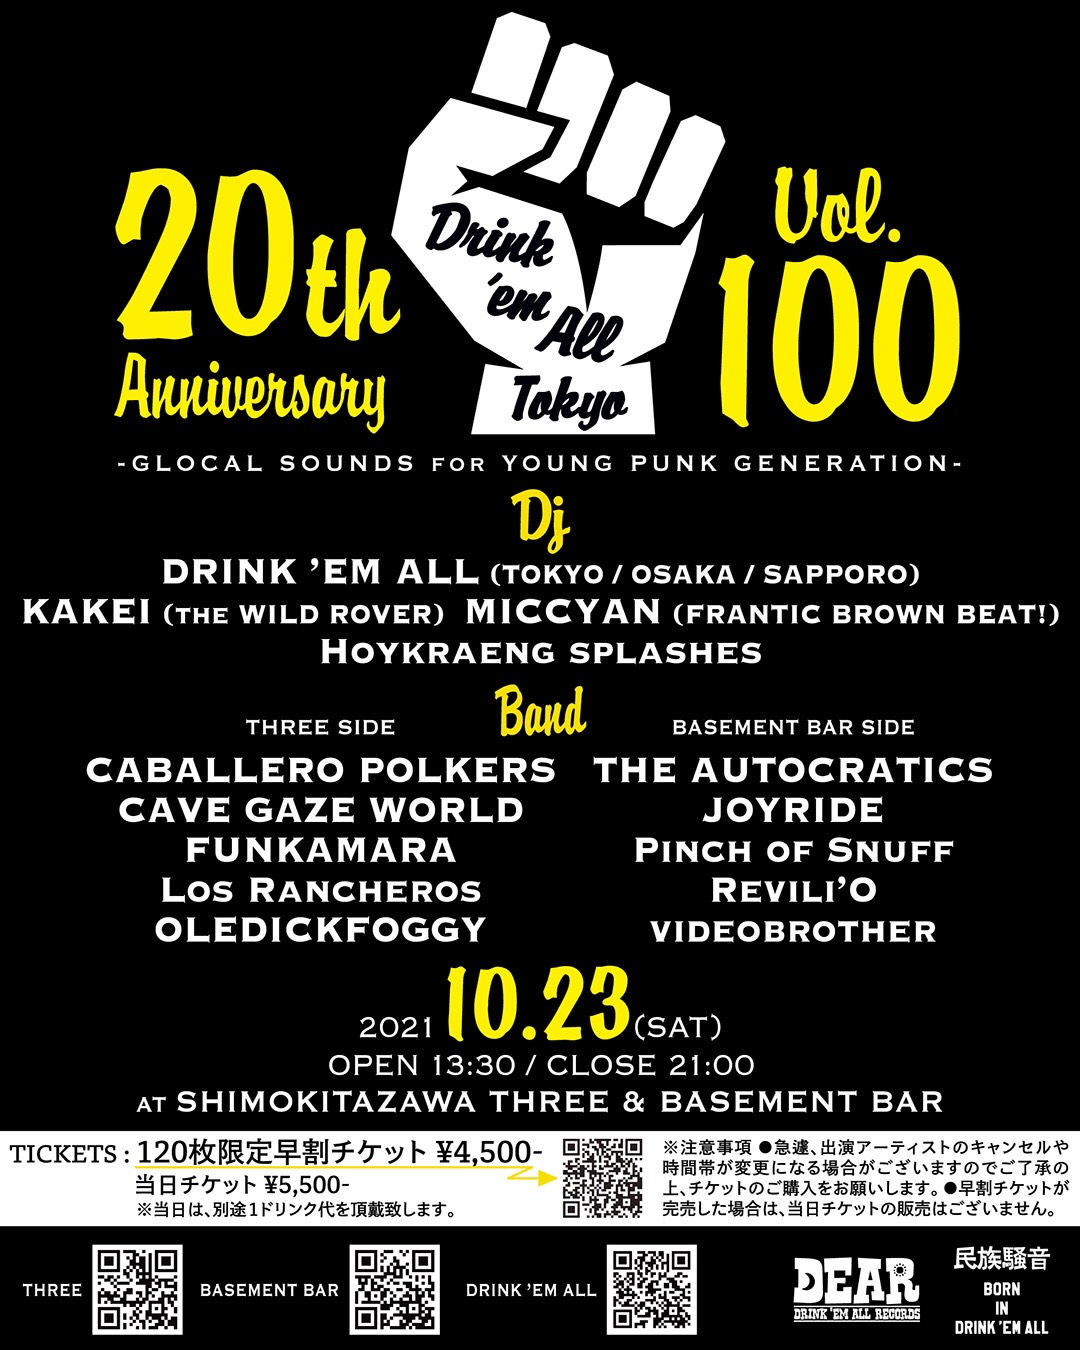 DRINK 'EM ALL TOKYO VOL.100 [20th ANNIVERSARY SPECIAL] -GLOCAL SOUNDS for YOUNG PUNK GENERATION-